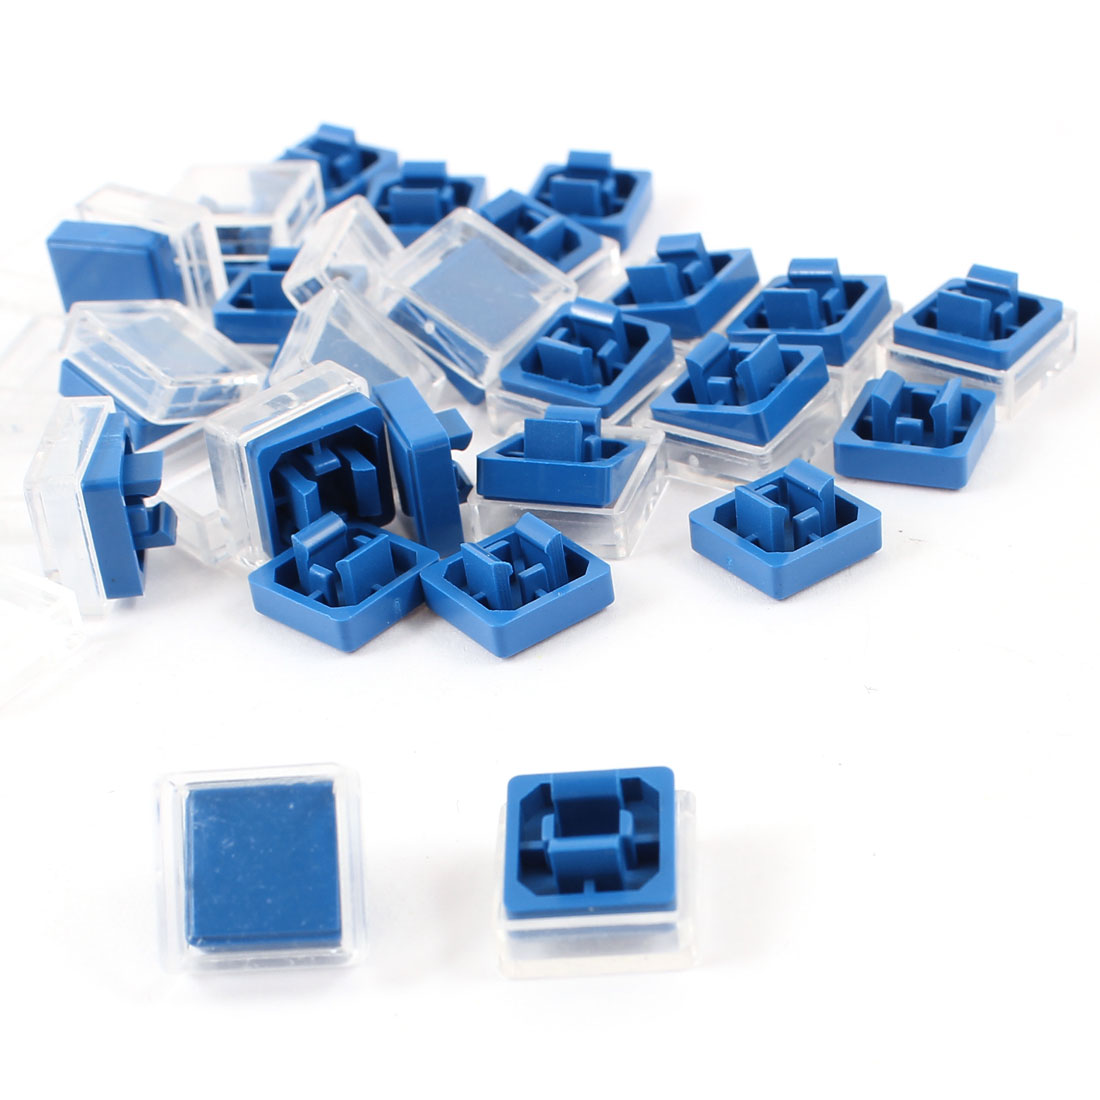 25 Pcs Square Shaped Tactile Button Caps Covers Protector Blue Clear for 12x12x7.3mm Tact Switch